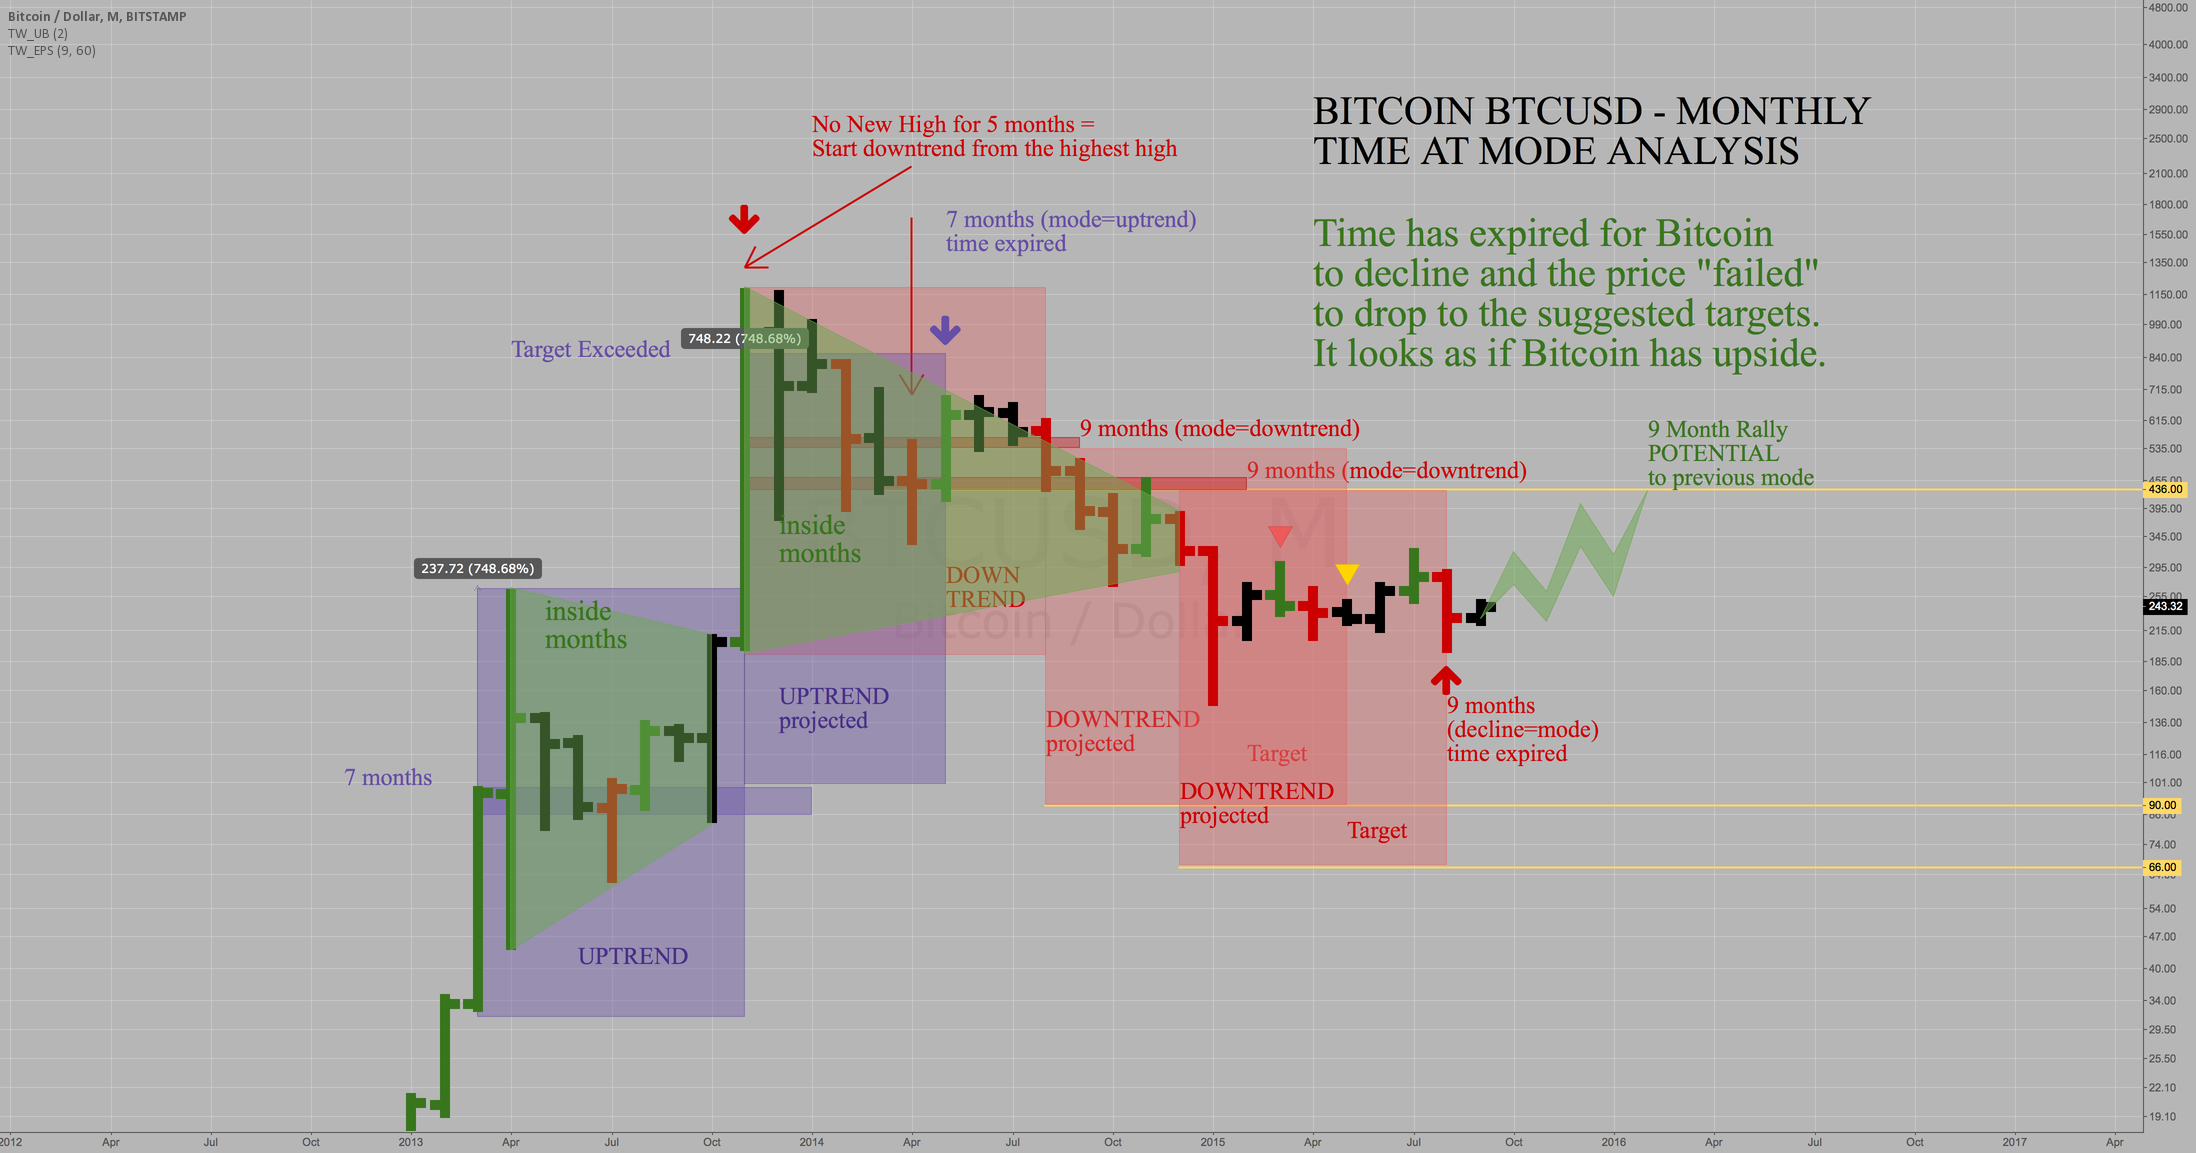 Bitcoin BTCUSD Bitstamp - Monthly Downtrend Time expired